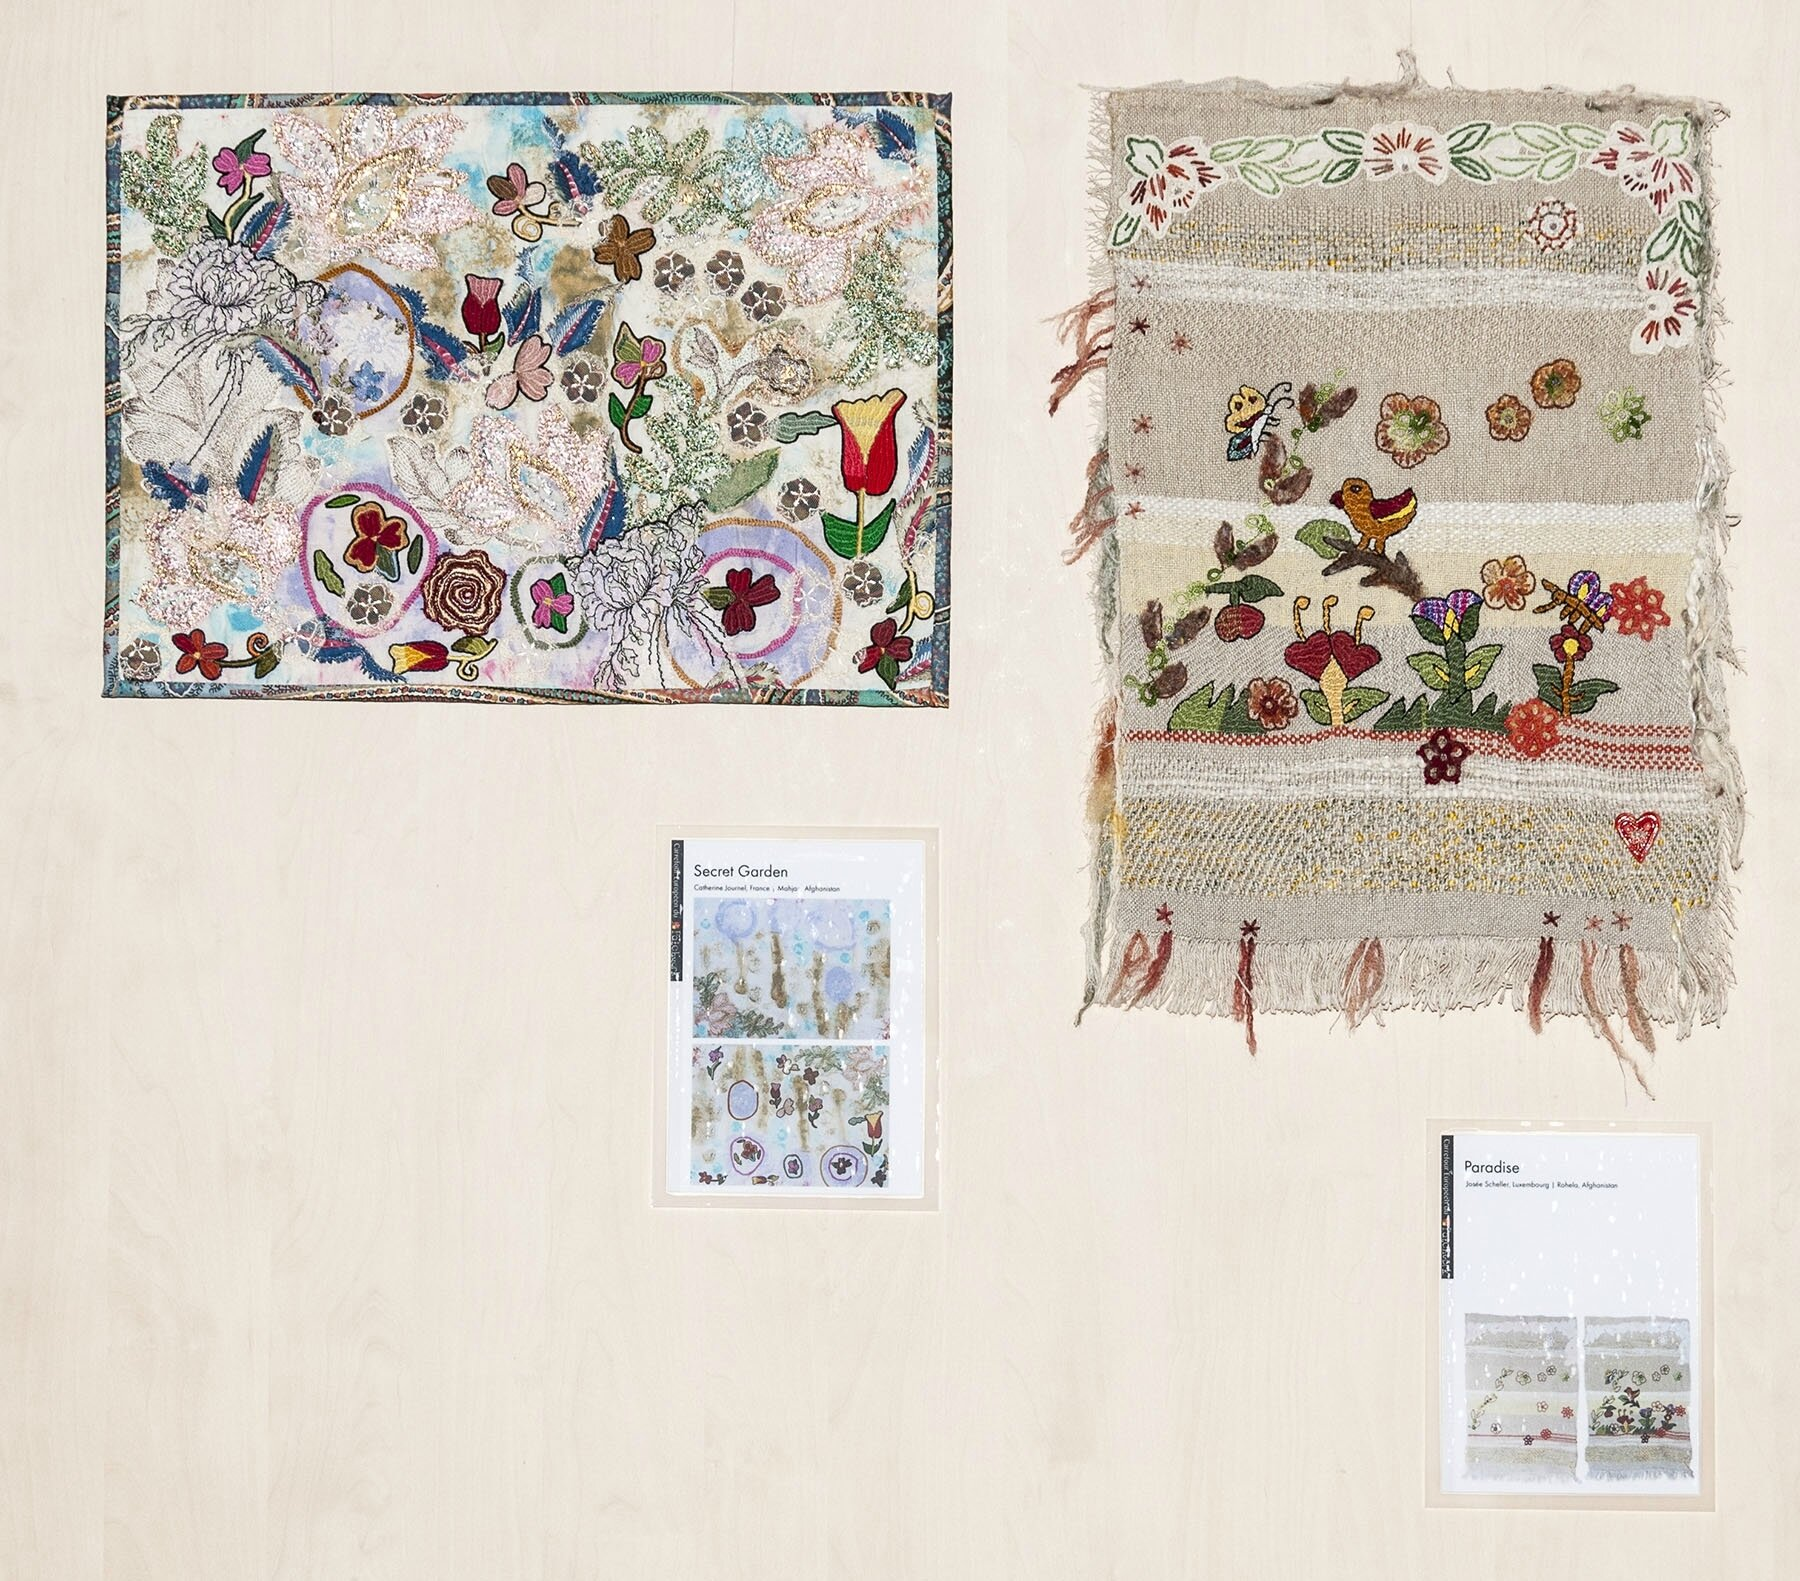 17052017-2017-05-17_19-02-11-Gardens Around the World et broderie Afghanne-QES 2017